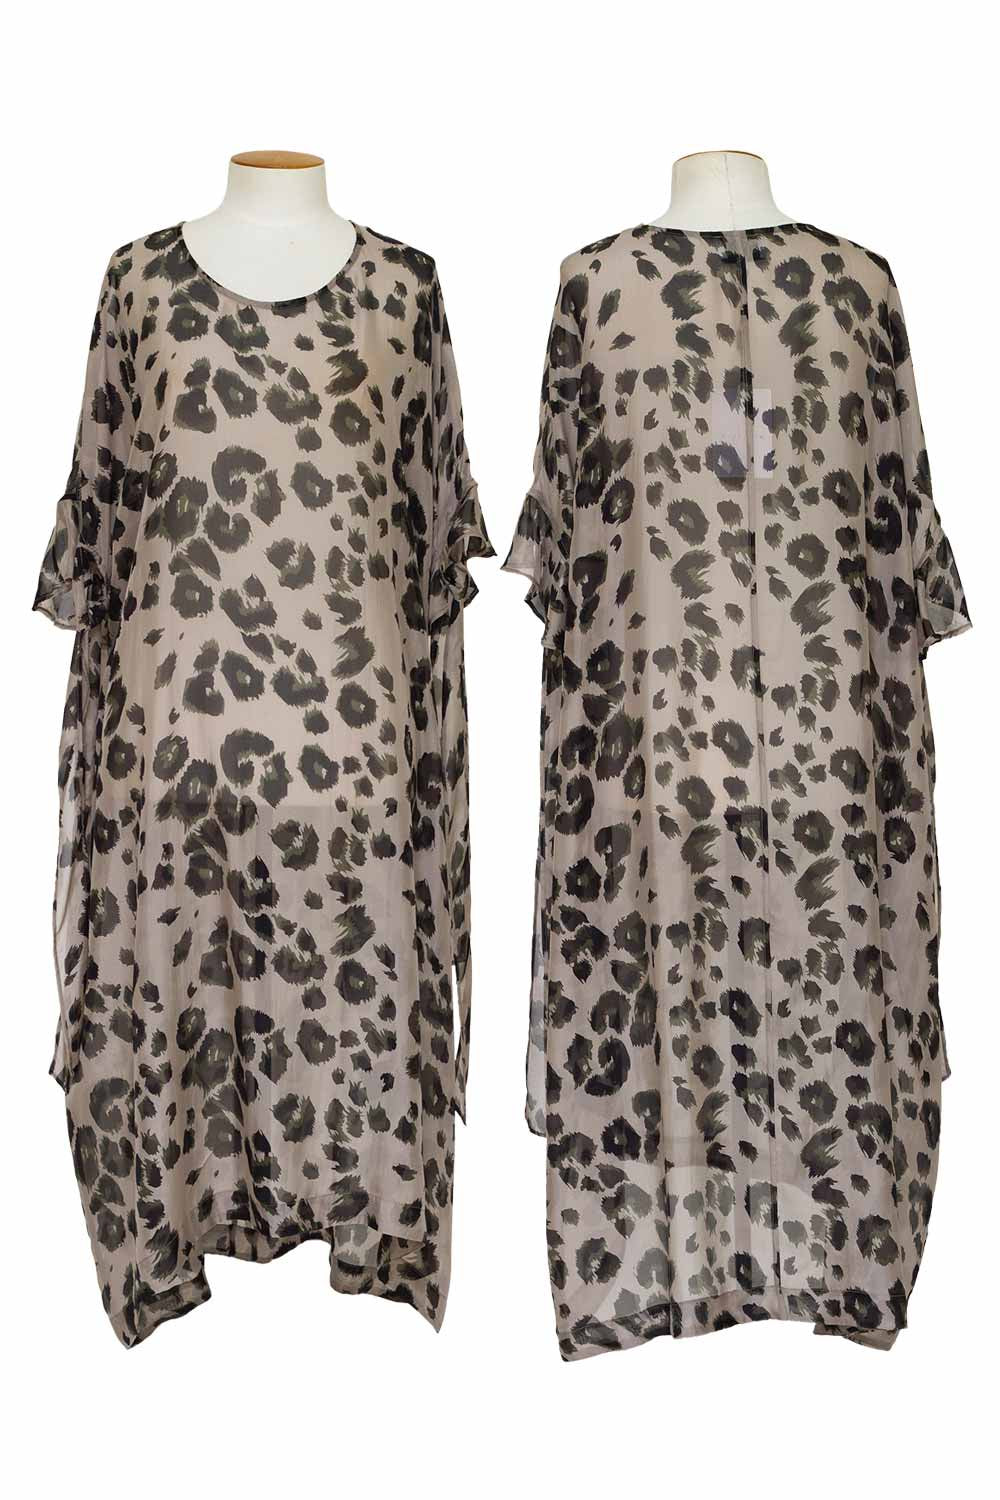 euphoria-safari-dress